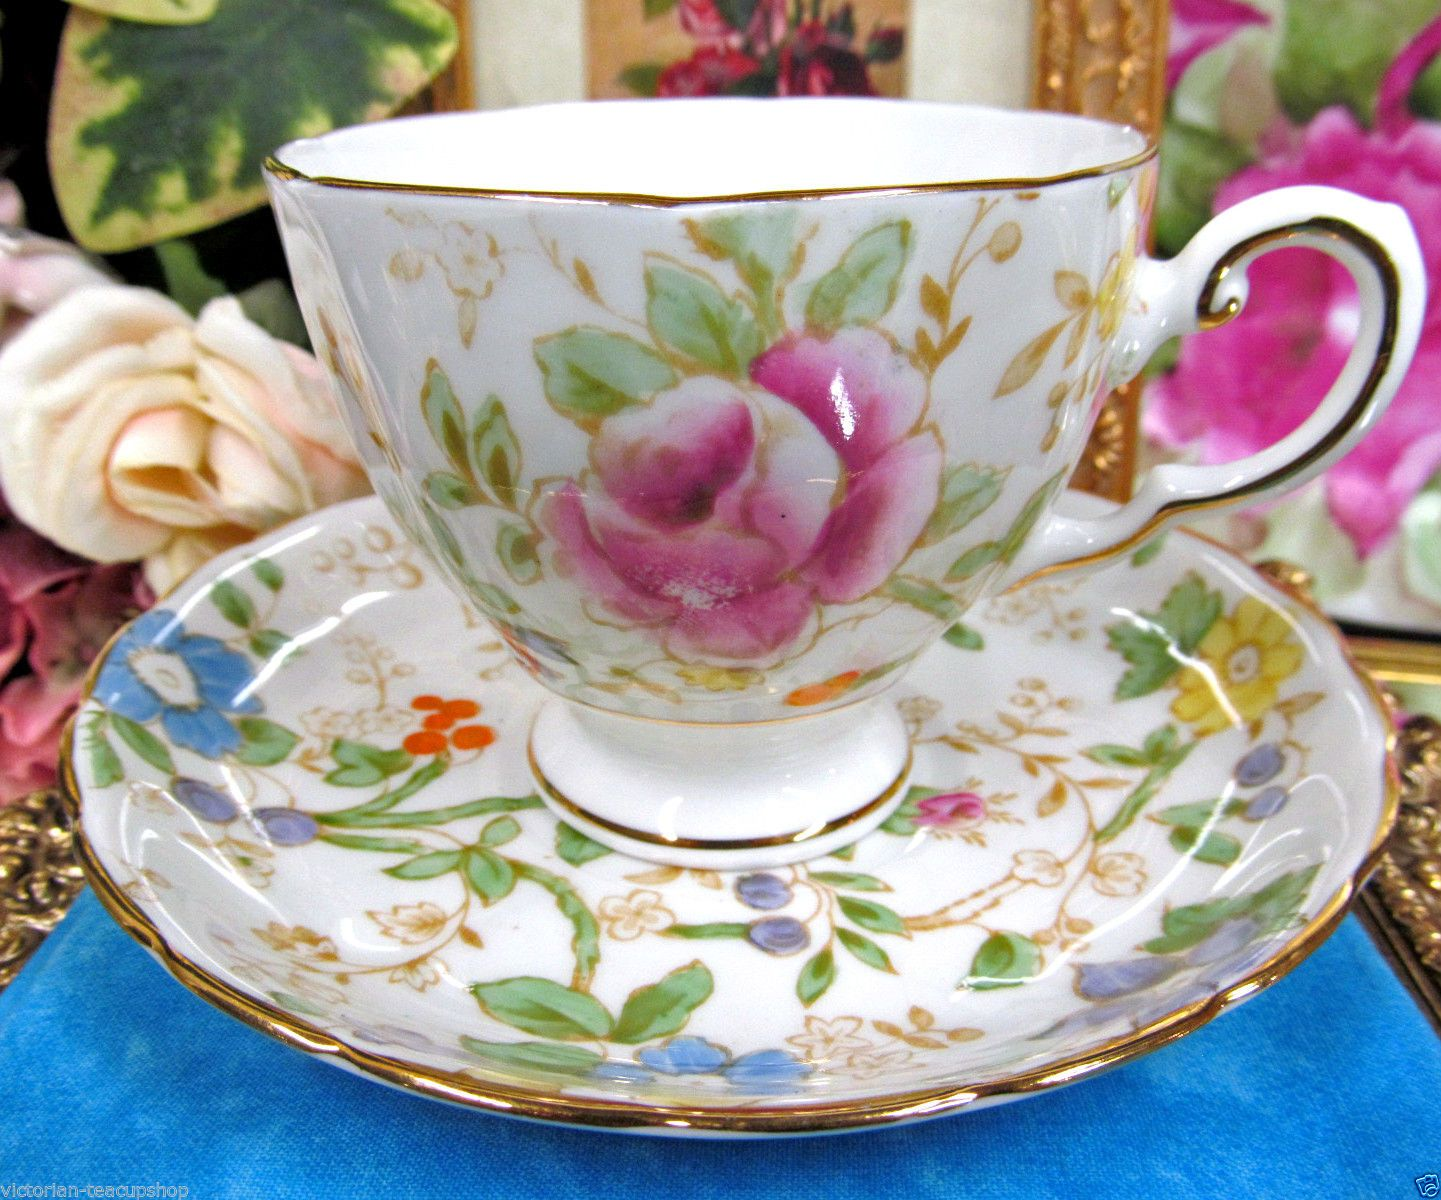 TUSCAN TEA CUP AND SAUCER FLORAL CHINTZ ROSE PAINTED TEACUP & SAUCER in Antiques, Decorative Arts, Ceramics & Porcelain | eBay